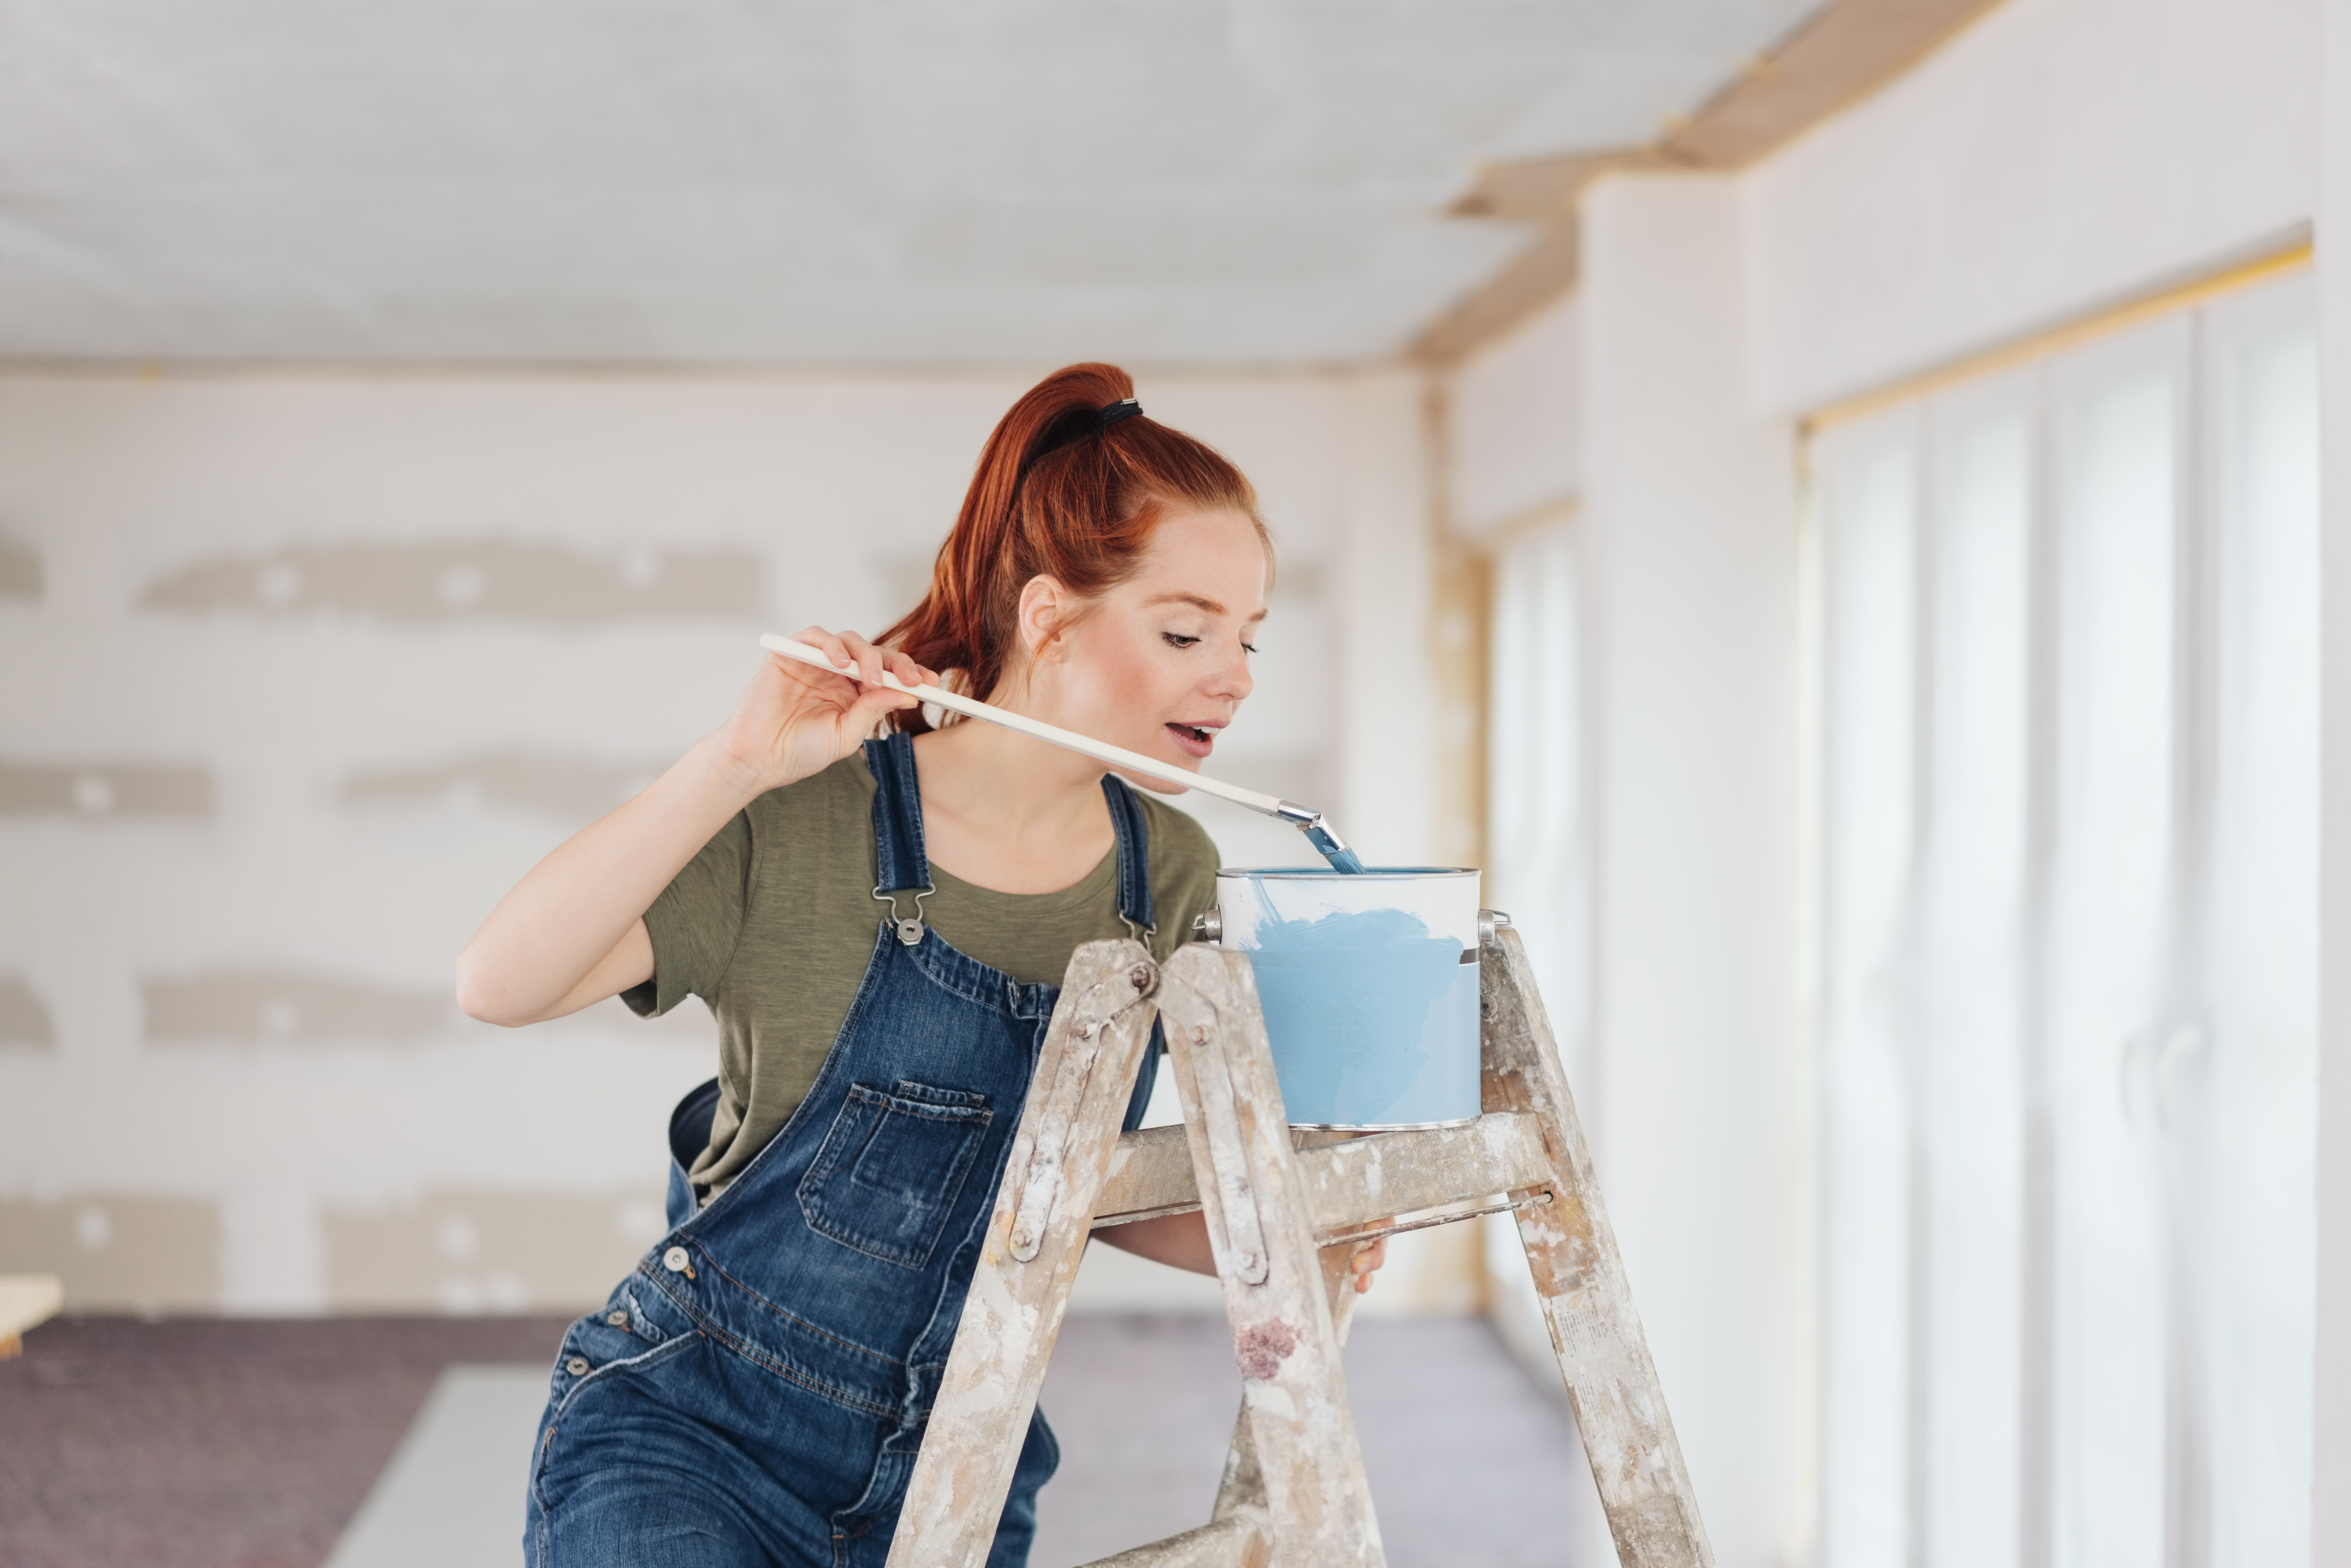 Pretty young redhead woman doing DIY painting standing on a ladder peering into a tub of paint in an unfinished living room